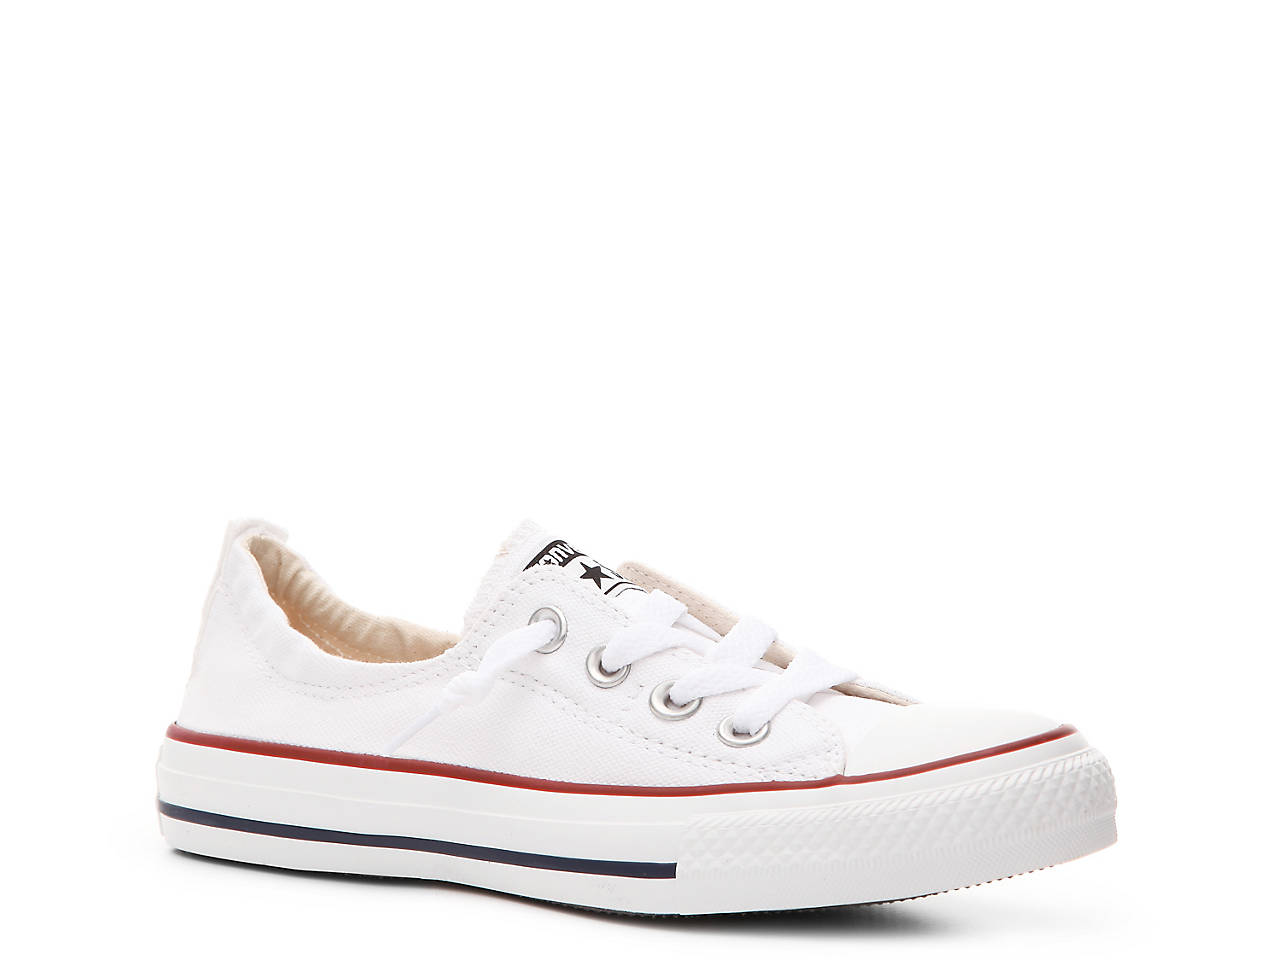 8e58ea4b19cf Converse Chuck Taylor All Star Shoreline Slip-On Sneaker - Women s ...